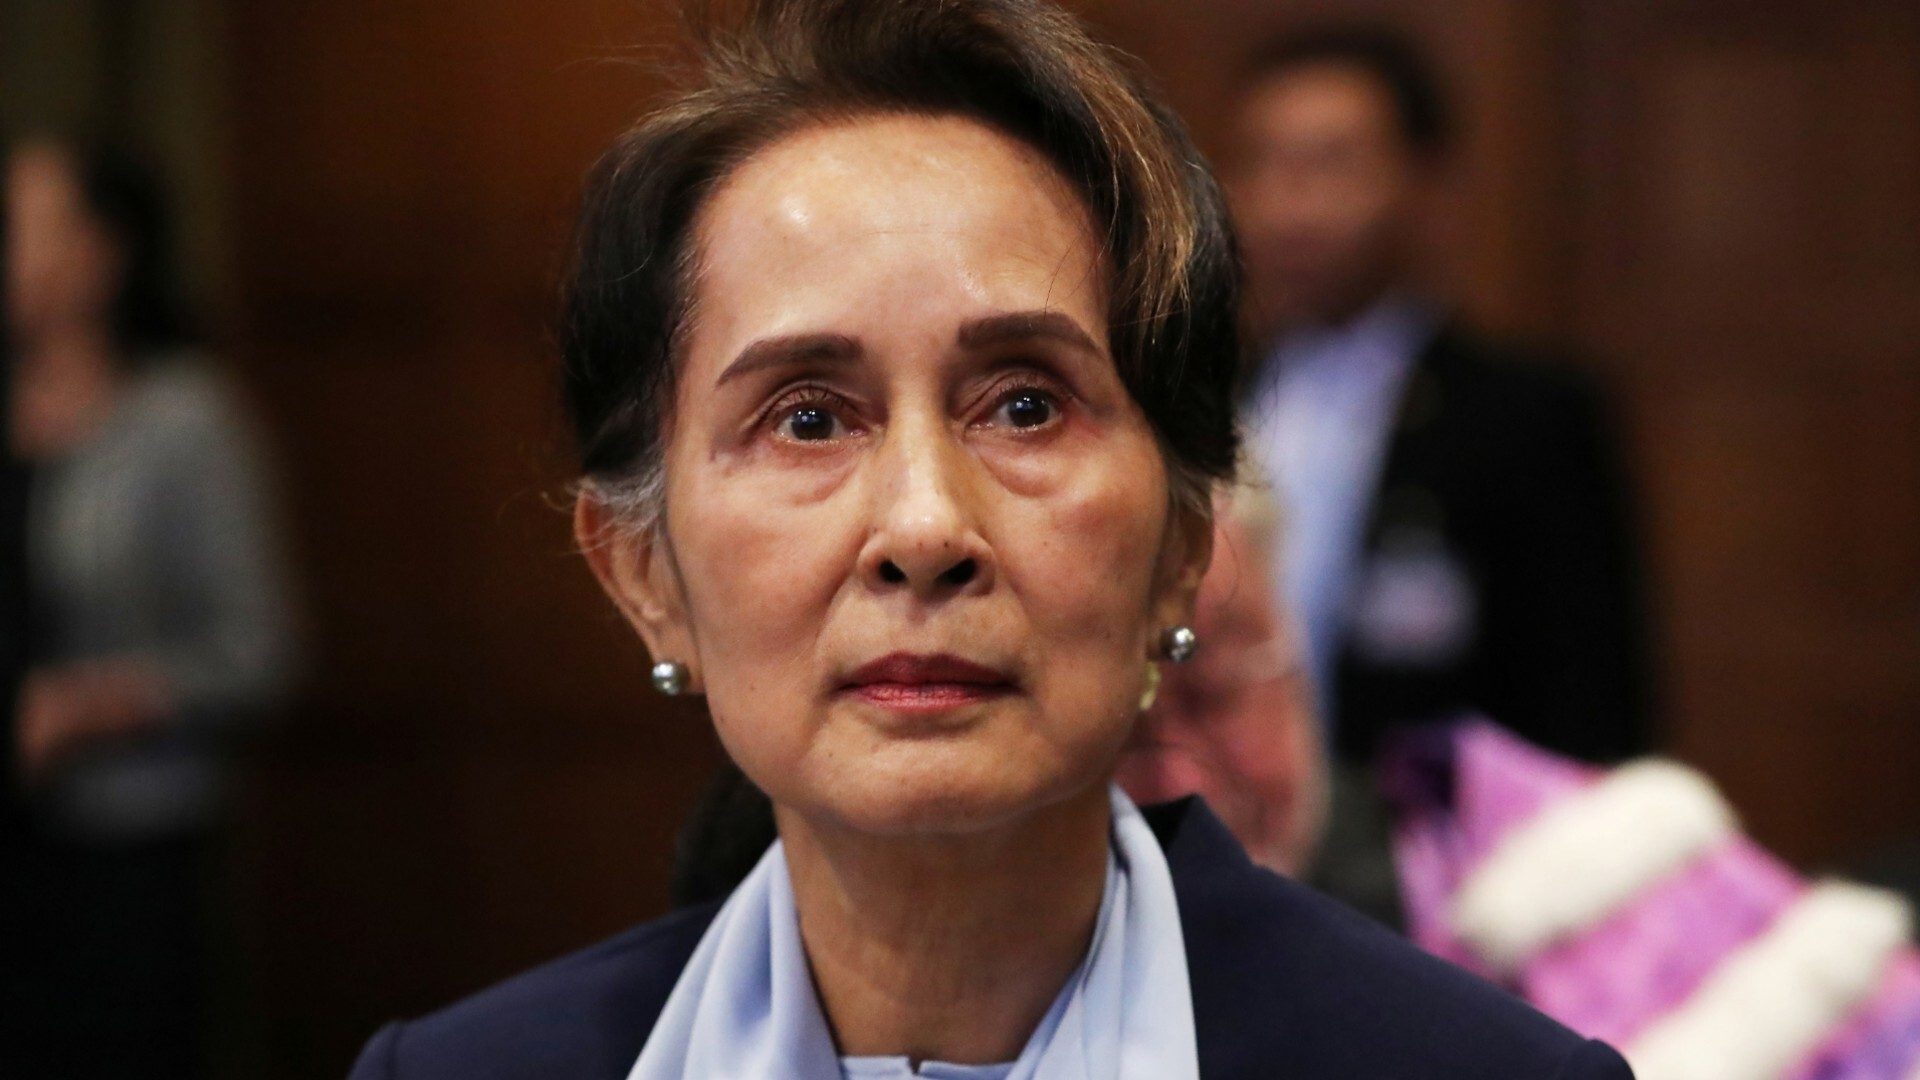 ICJ speech: Suu Kyi fails to use 'Rohingya' to describe minority